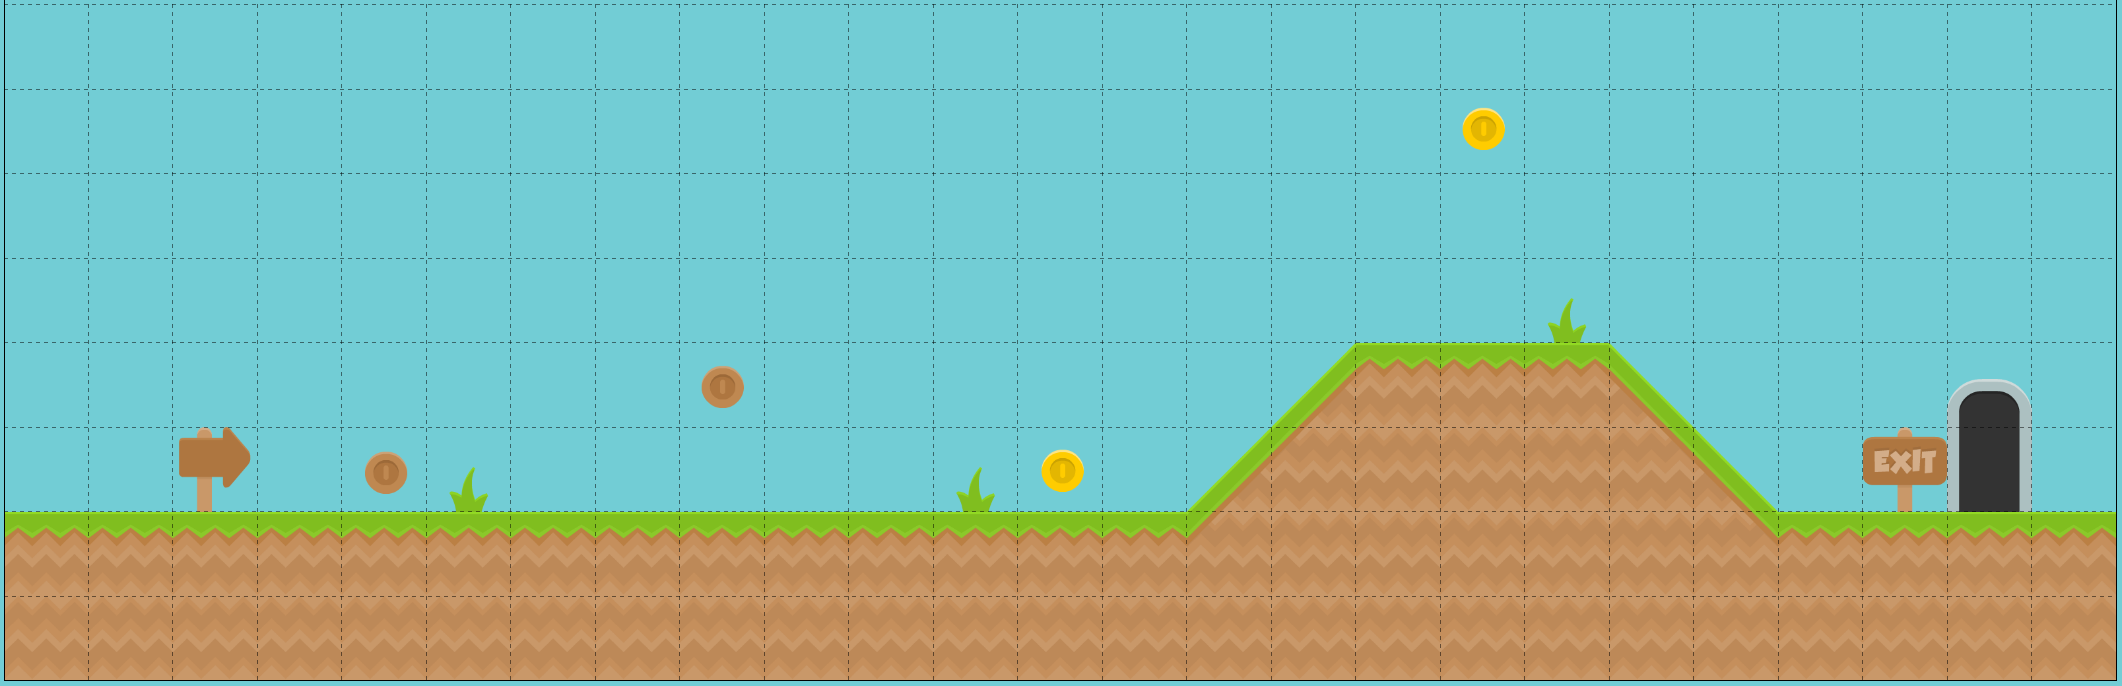 Basic design for level one of the arcade platformer